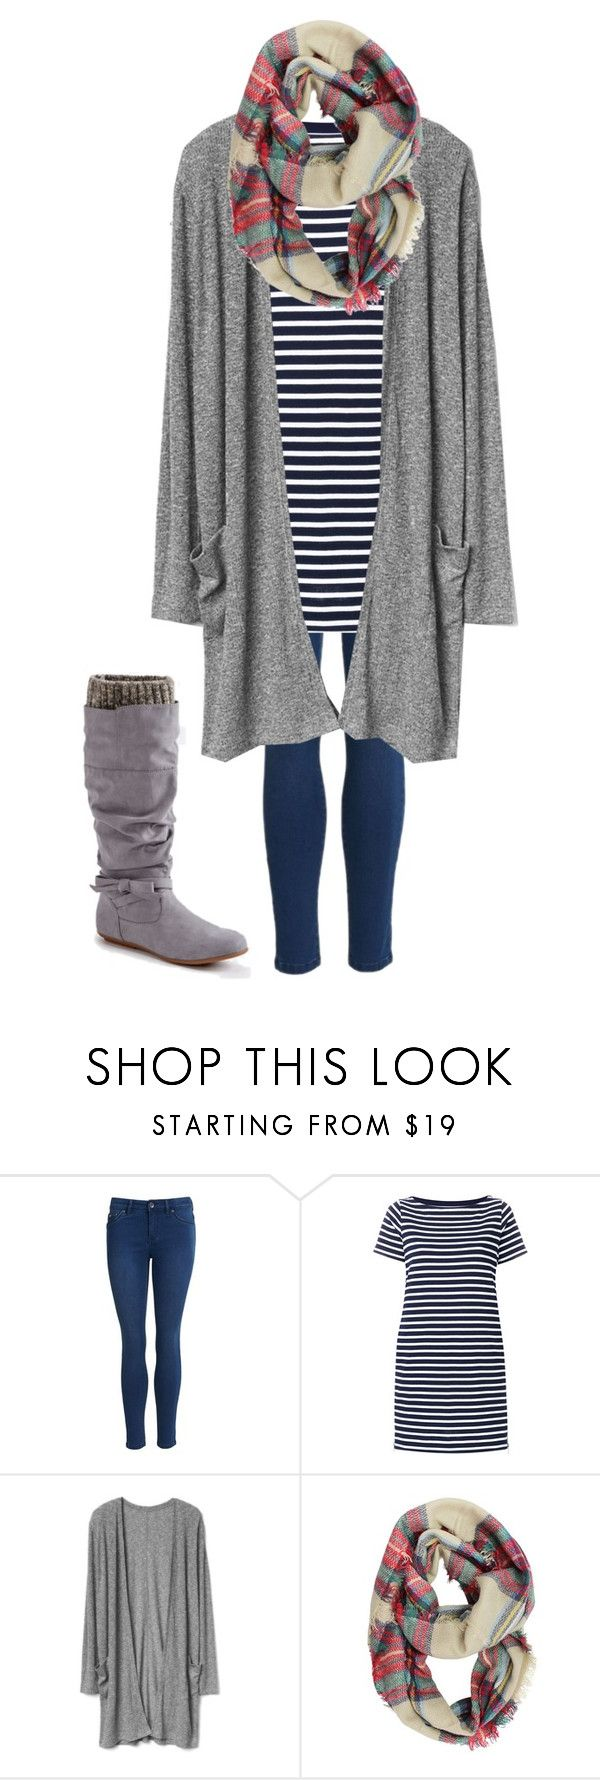 """my New Year's Eve outfit"" by browneyedbeautiful ❤ liked on Polyvore featuring Superdry, Sacai and JustFab"